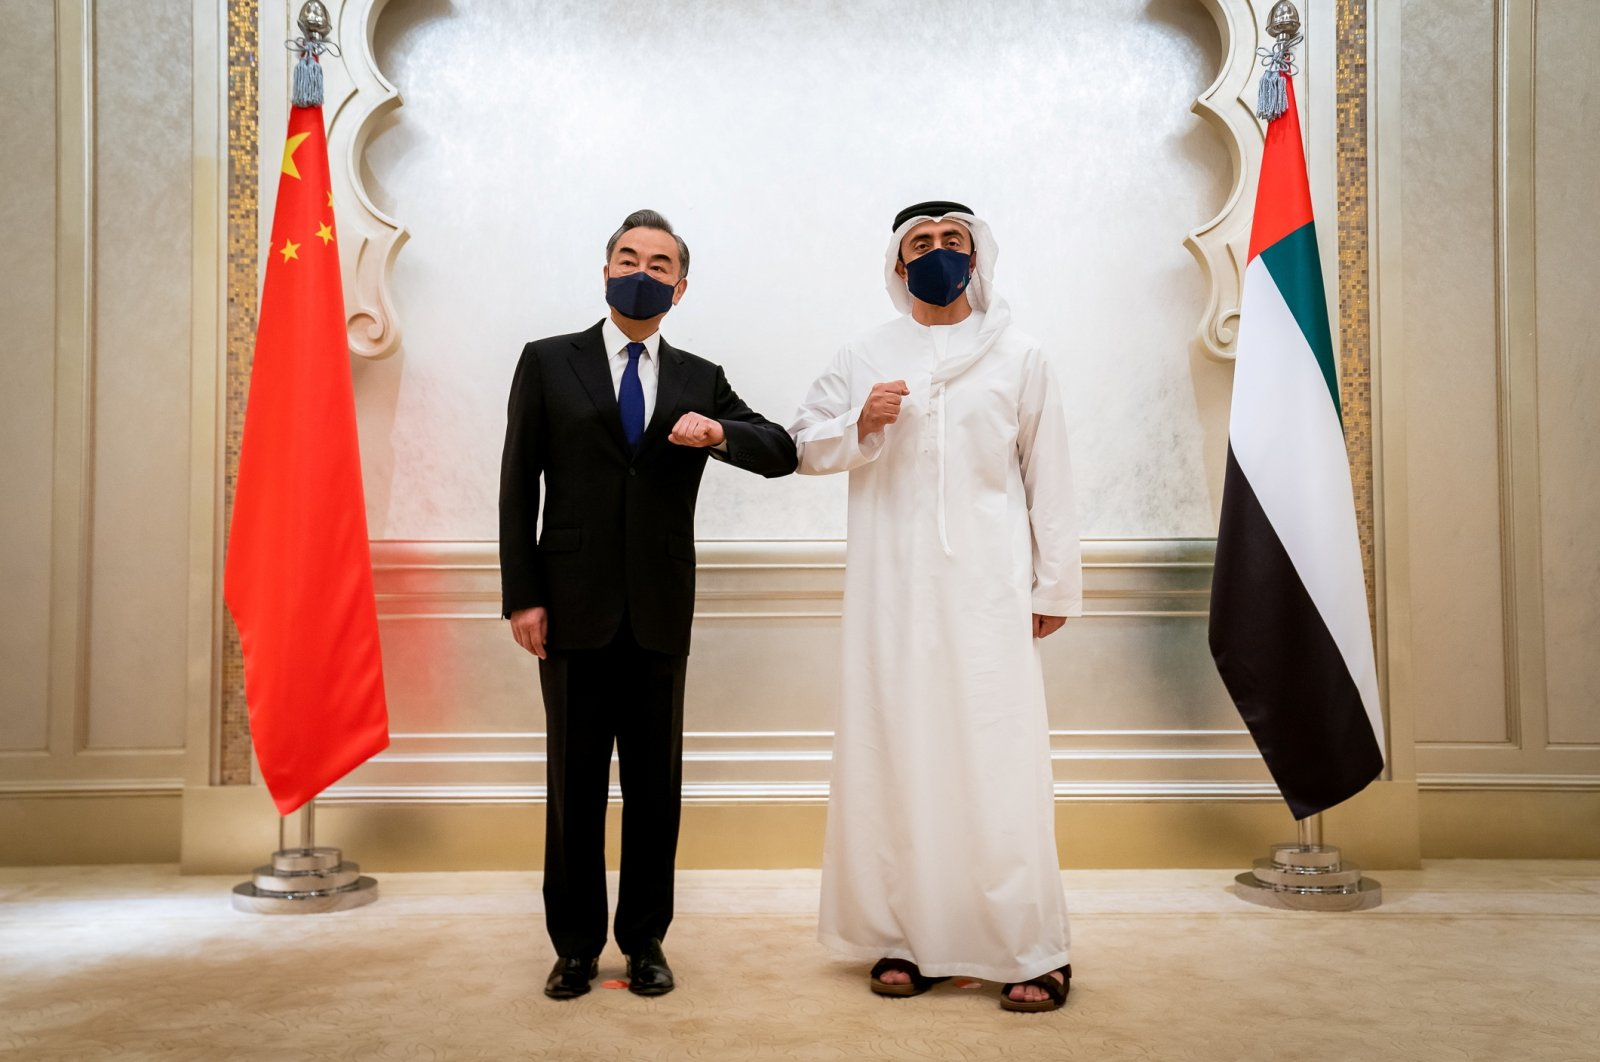 Chinese State Councilor and Foreign Minister Wang Yi (L) and UAE Foreign Minister Abdullah Bin Zayed Al Nahyan do an elbow shake during their meeting in Abu Dhabi, United Arab Emirates, March 28, 2021. (REUTERS Photo)